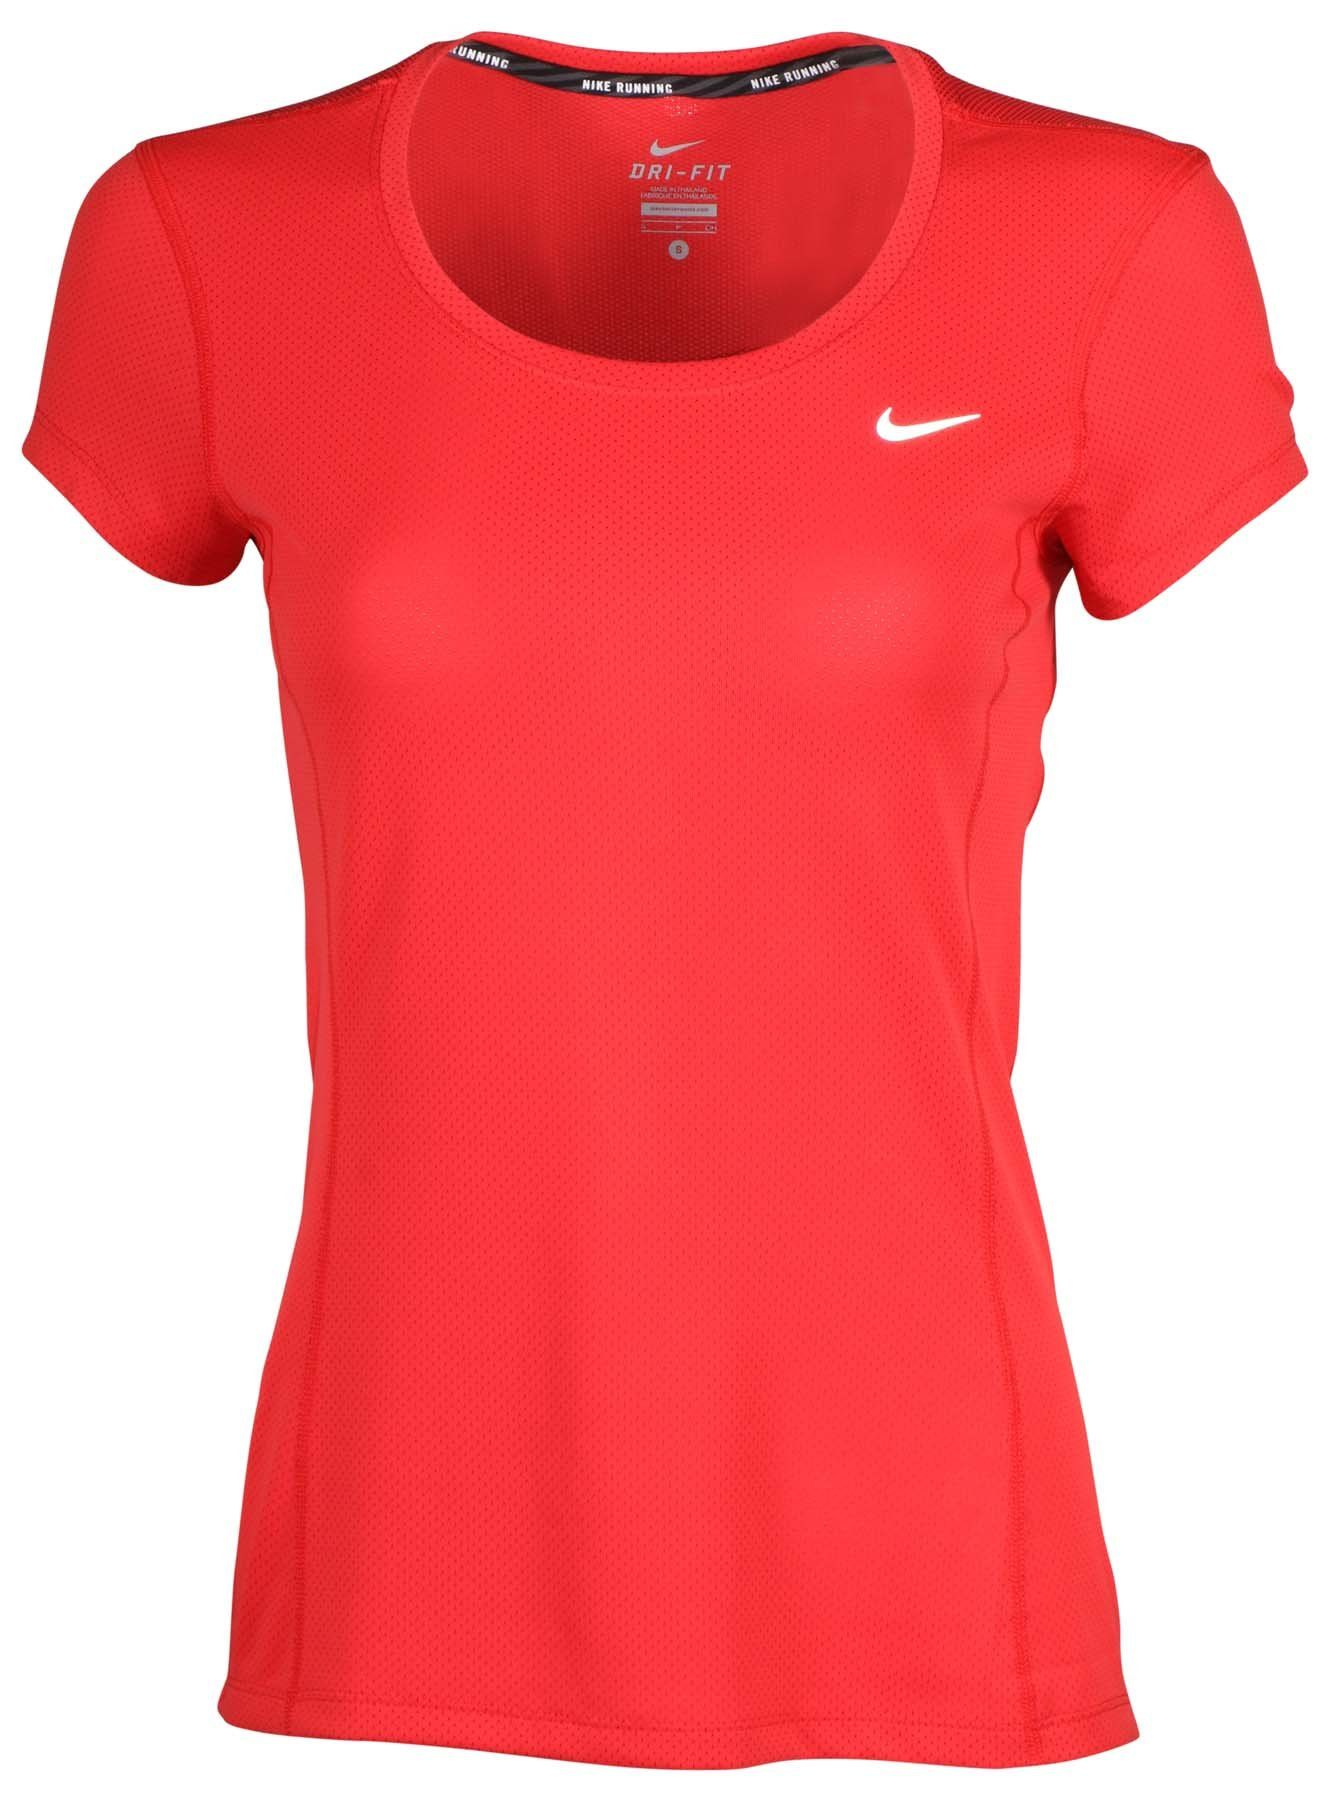 9edd40eb09da Nike Women s Dri-Fit Contour Short Sleeve Running Shirt-Red-Large. Authentic